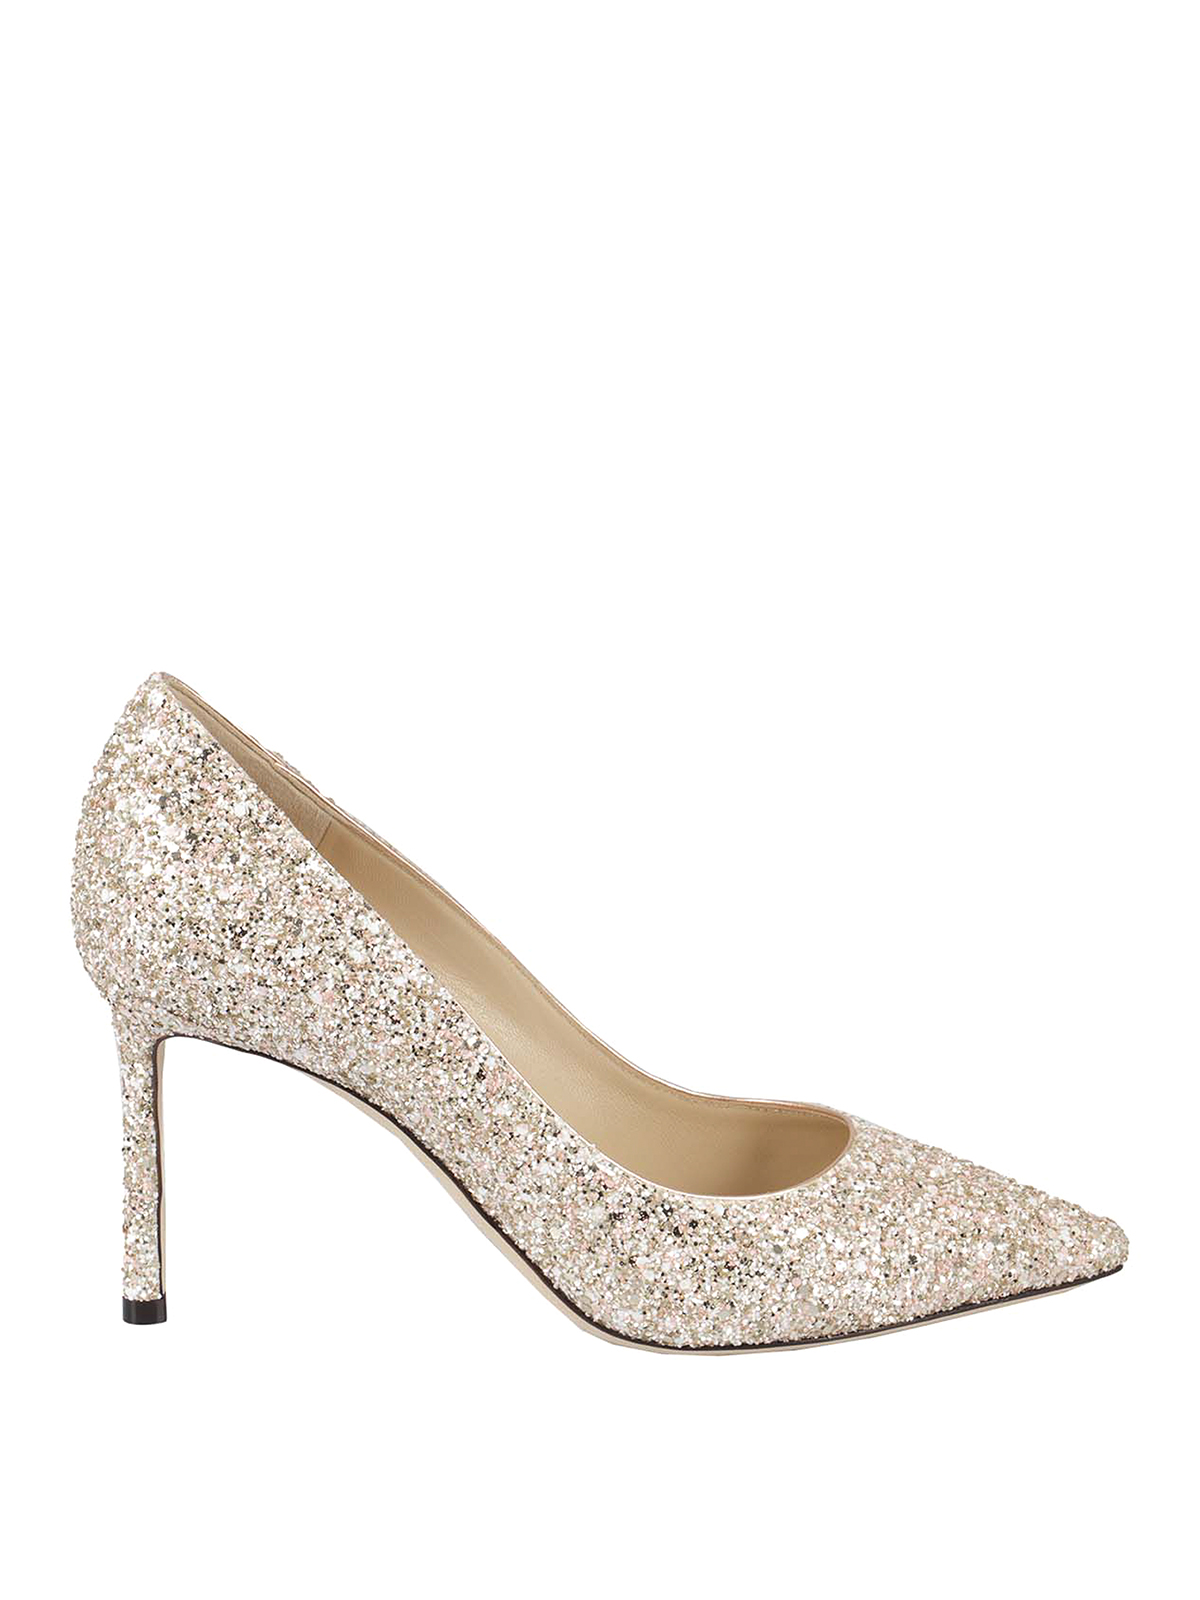 Jimmy Choo Romy 85 Pumps In Gold Color In Rose Gold